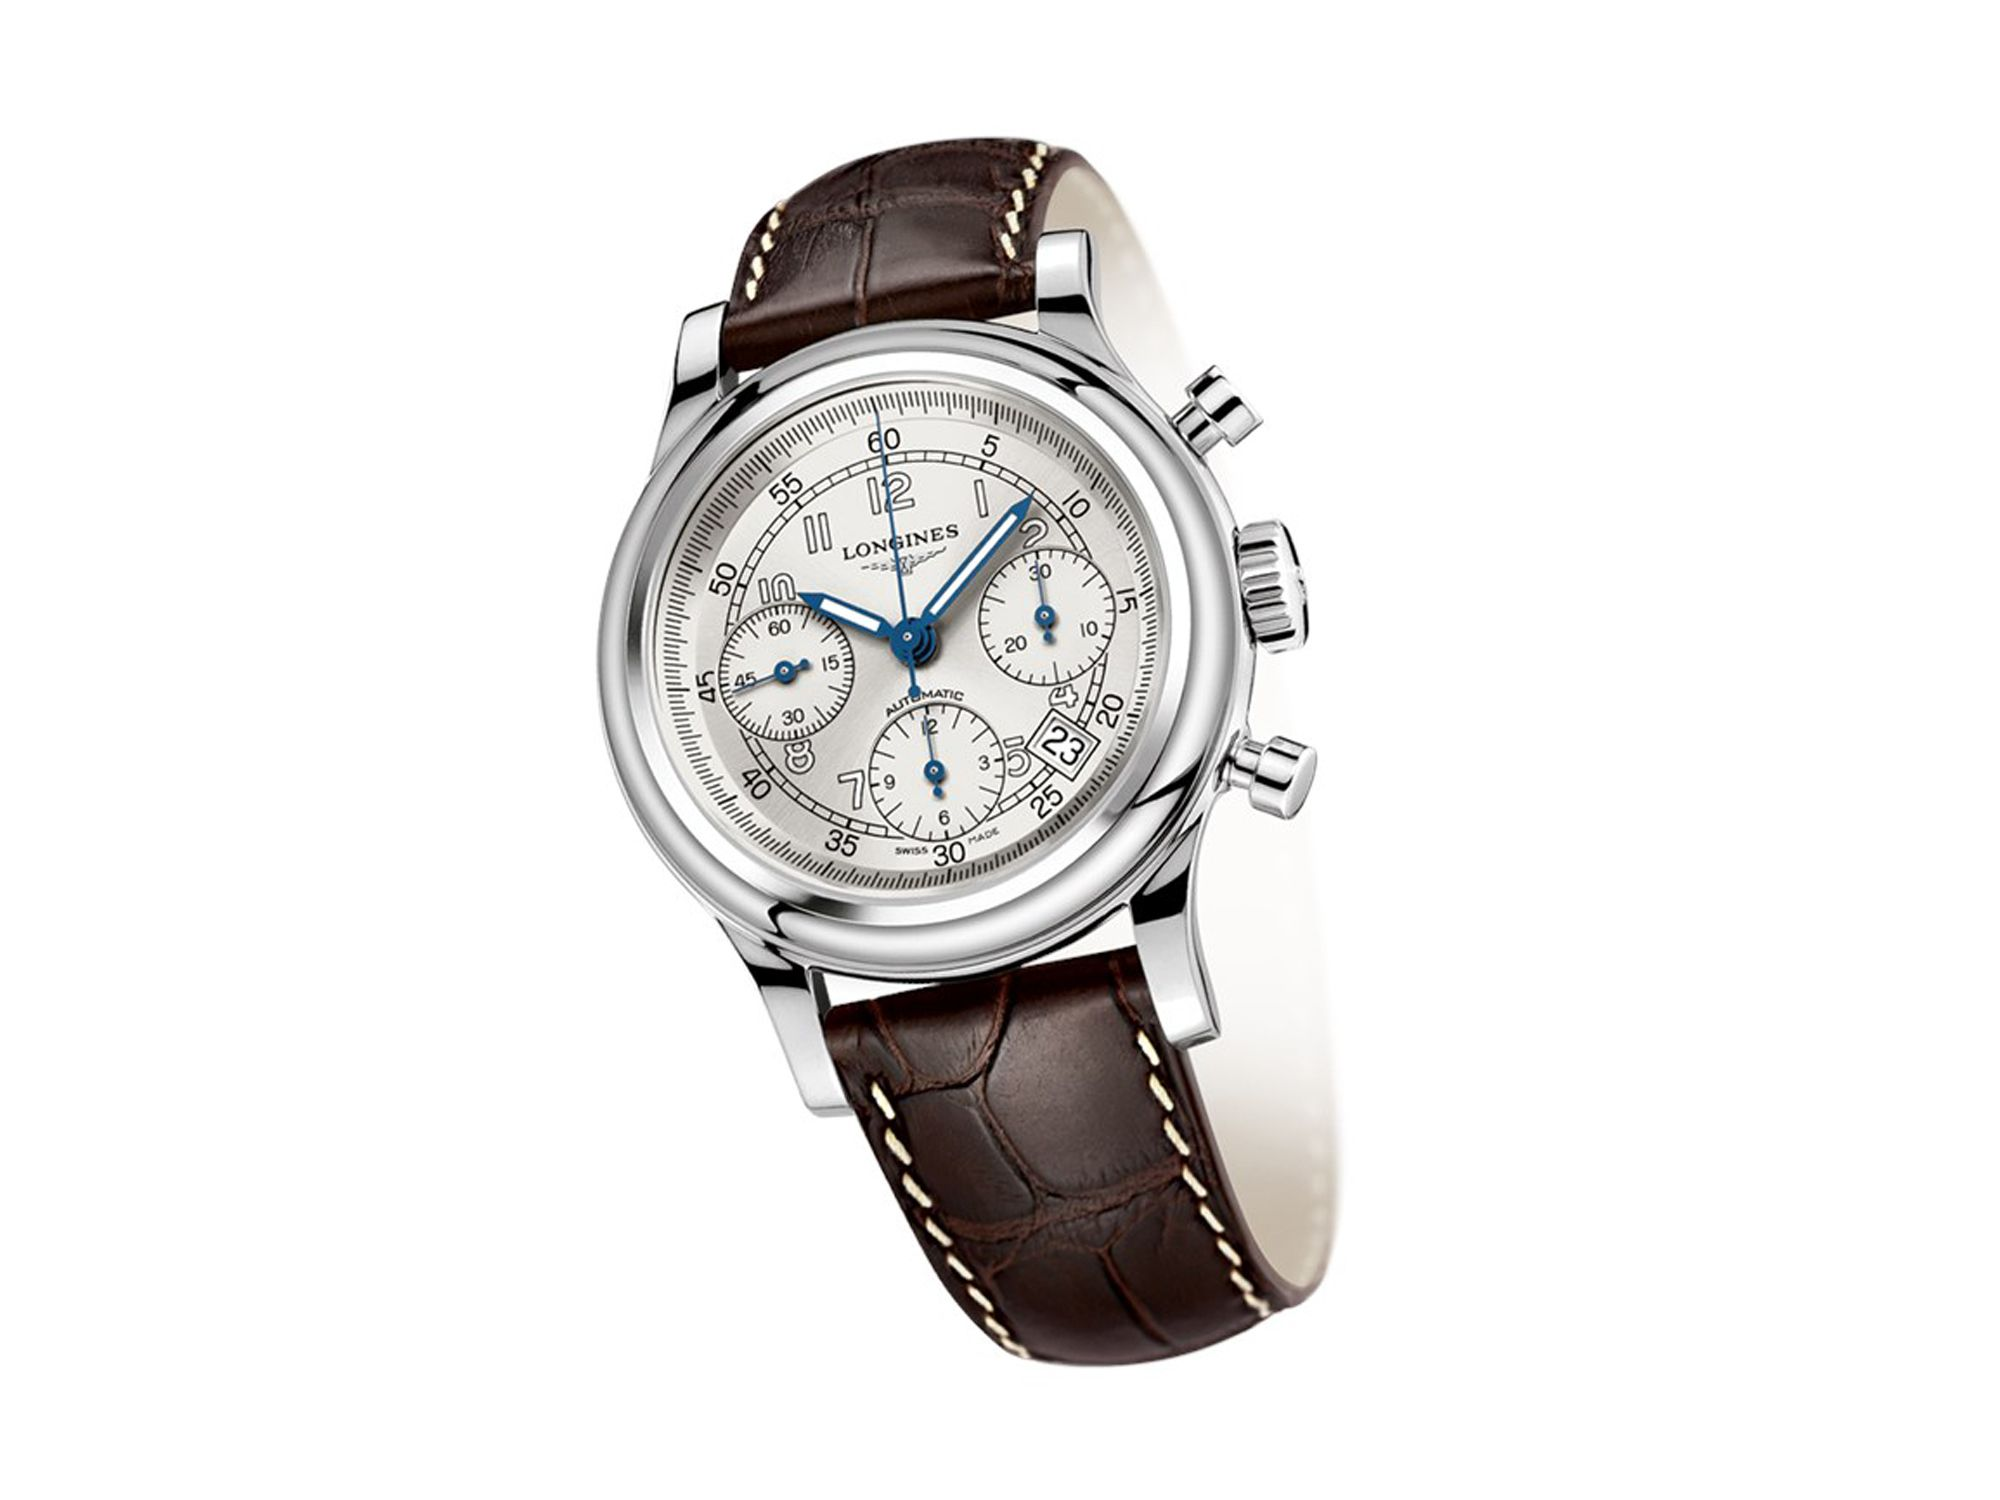 Forum on this topic: 10 Best Mens Watches Under 2000, 10-best-mens-watches-under-2000/